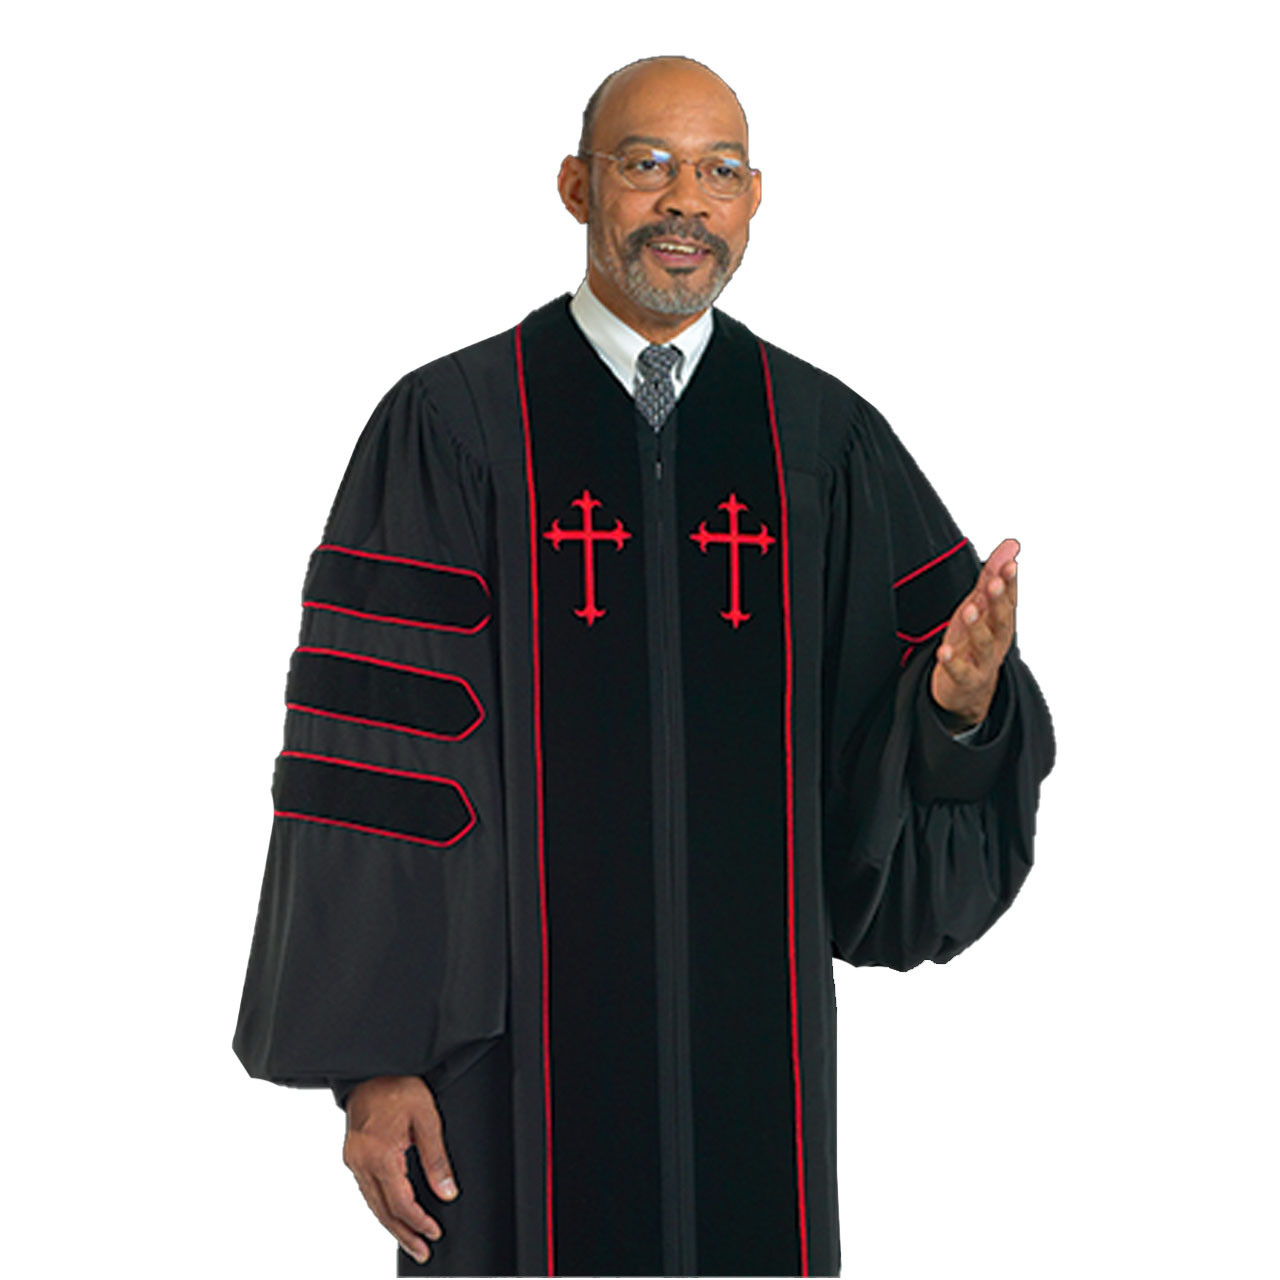 H-123 Doctor of Divinity Pulpit Robe